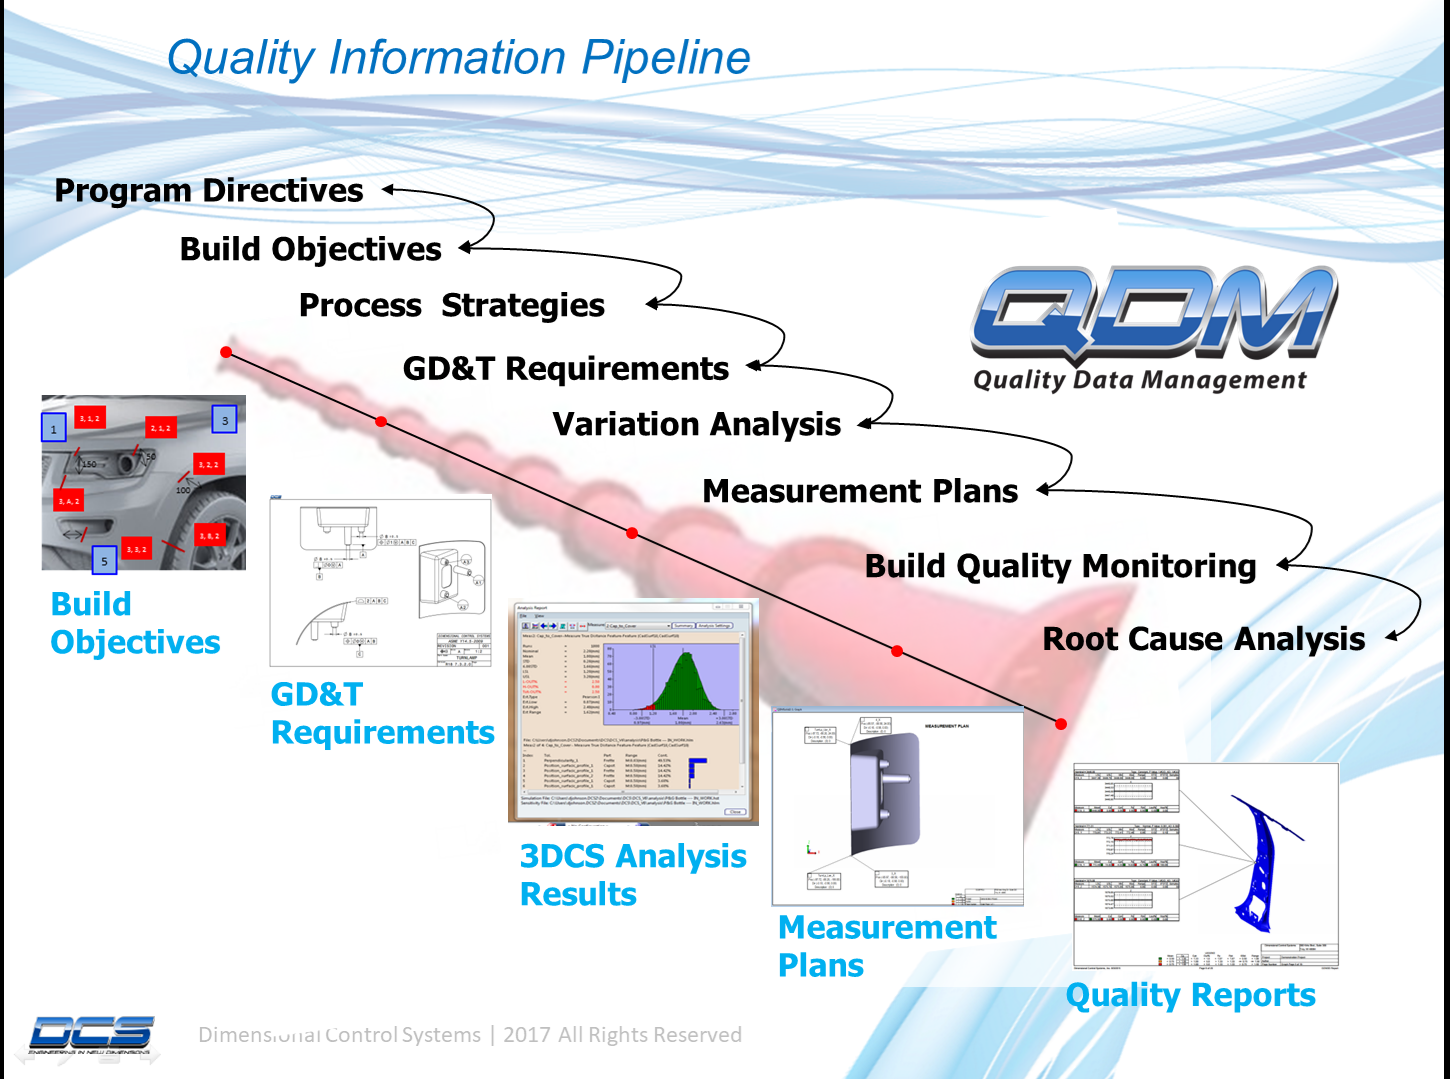 Quality-information-pipeline.png